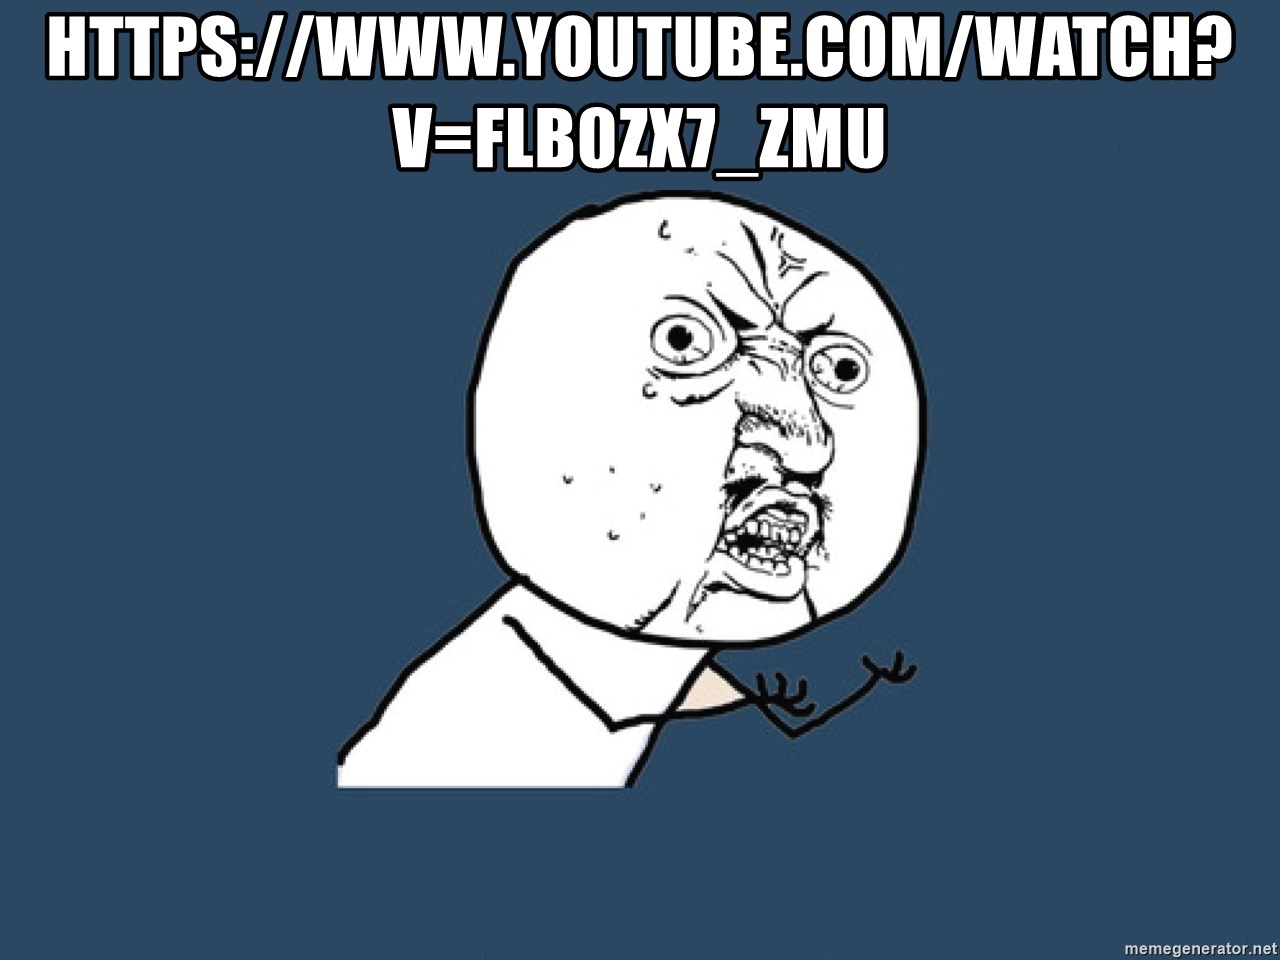 Y U No - https://www.youtube.com/watch?v=flB0ZX7_zMU